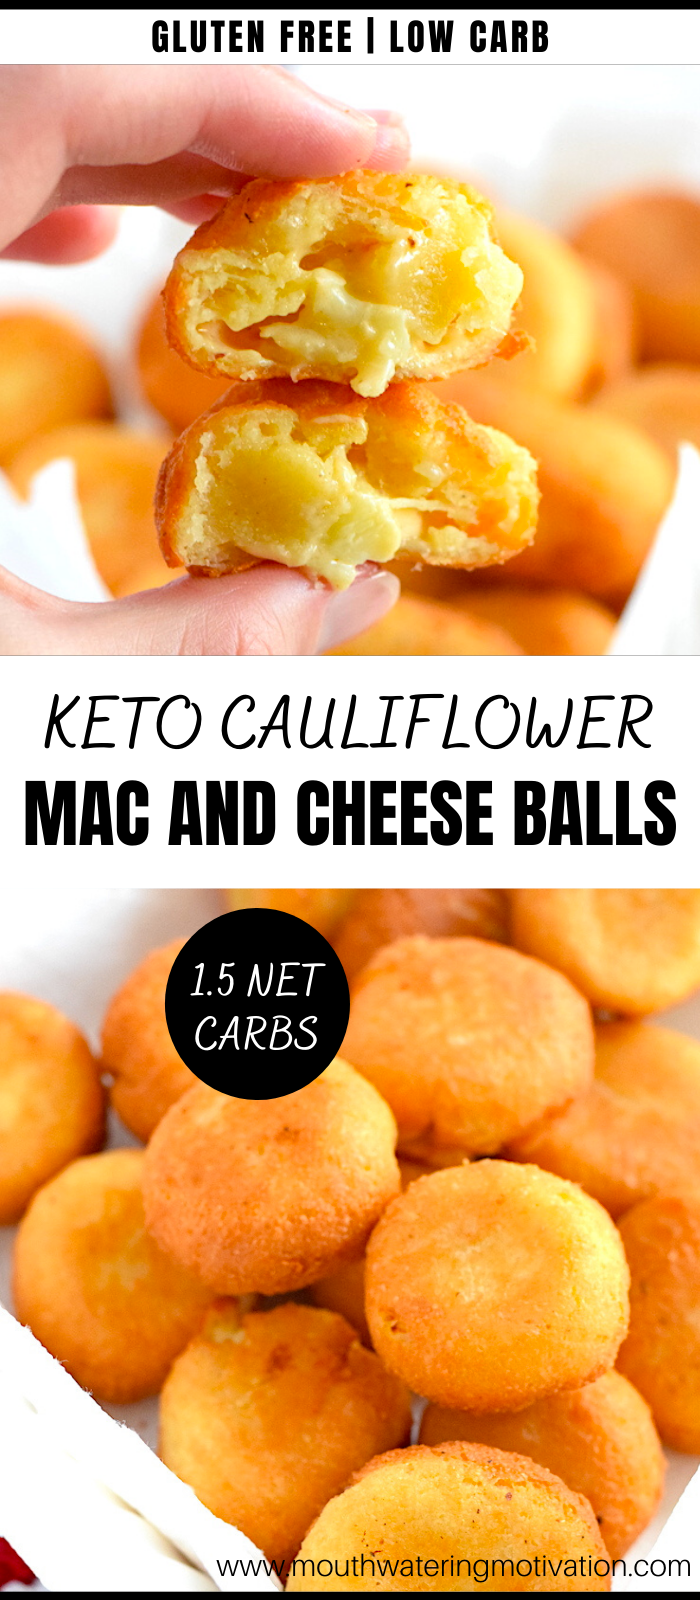 Keto Cauliflower Mac and Cheese Balls